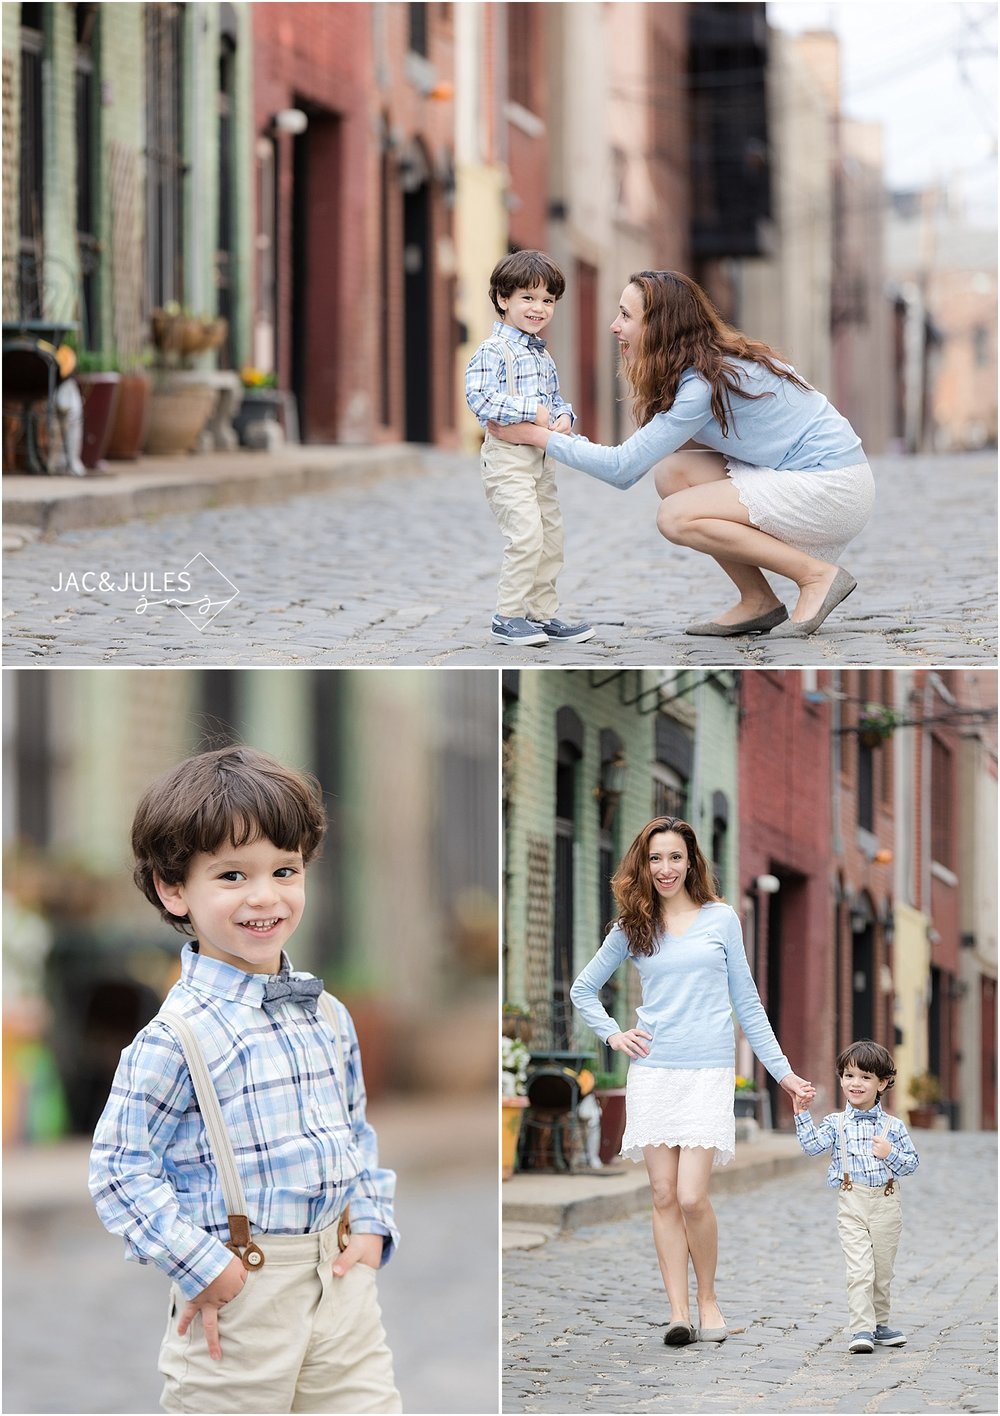 jacnjules photographs mother and son on cobblestone street in Hoboken NJ